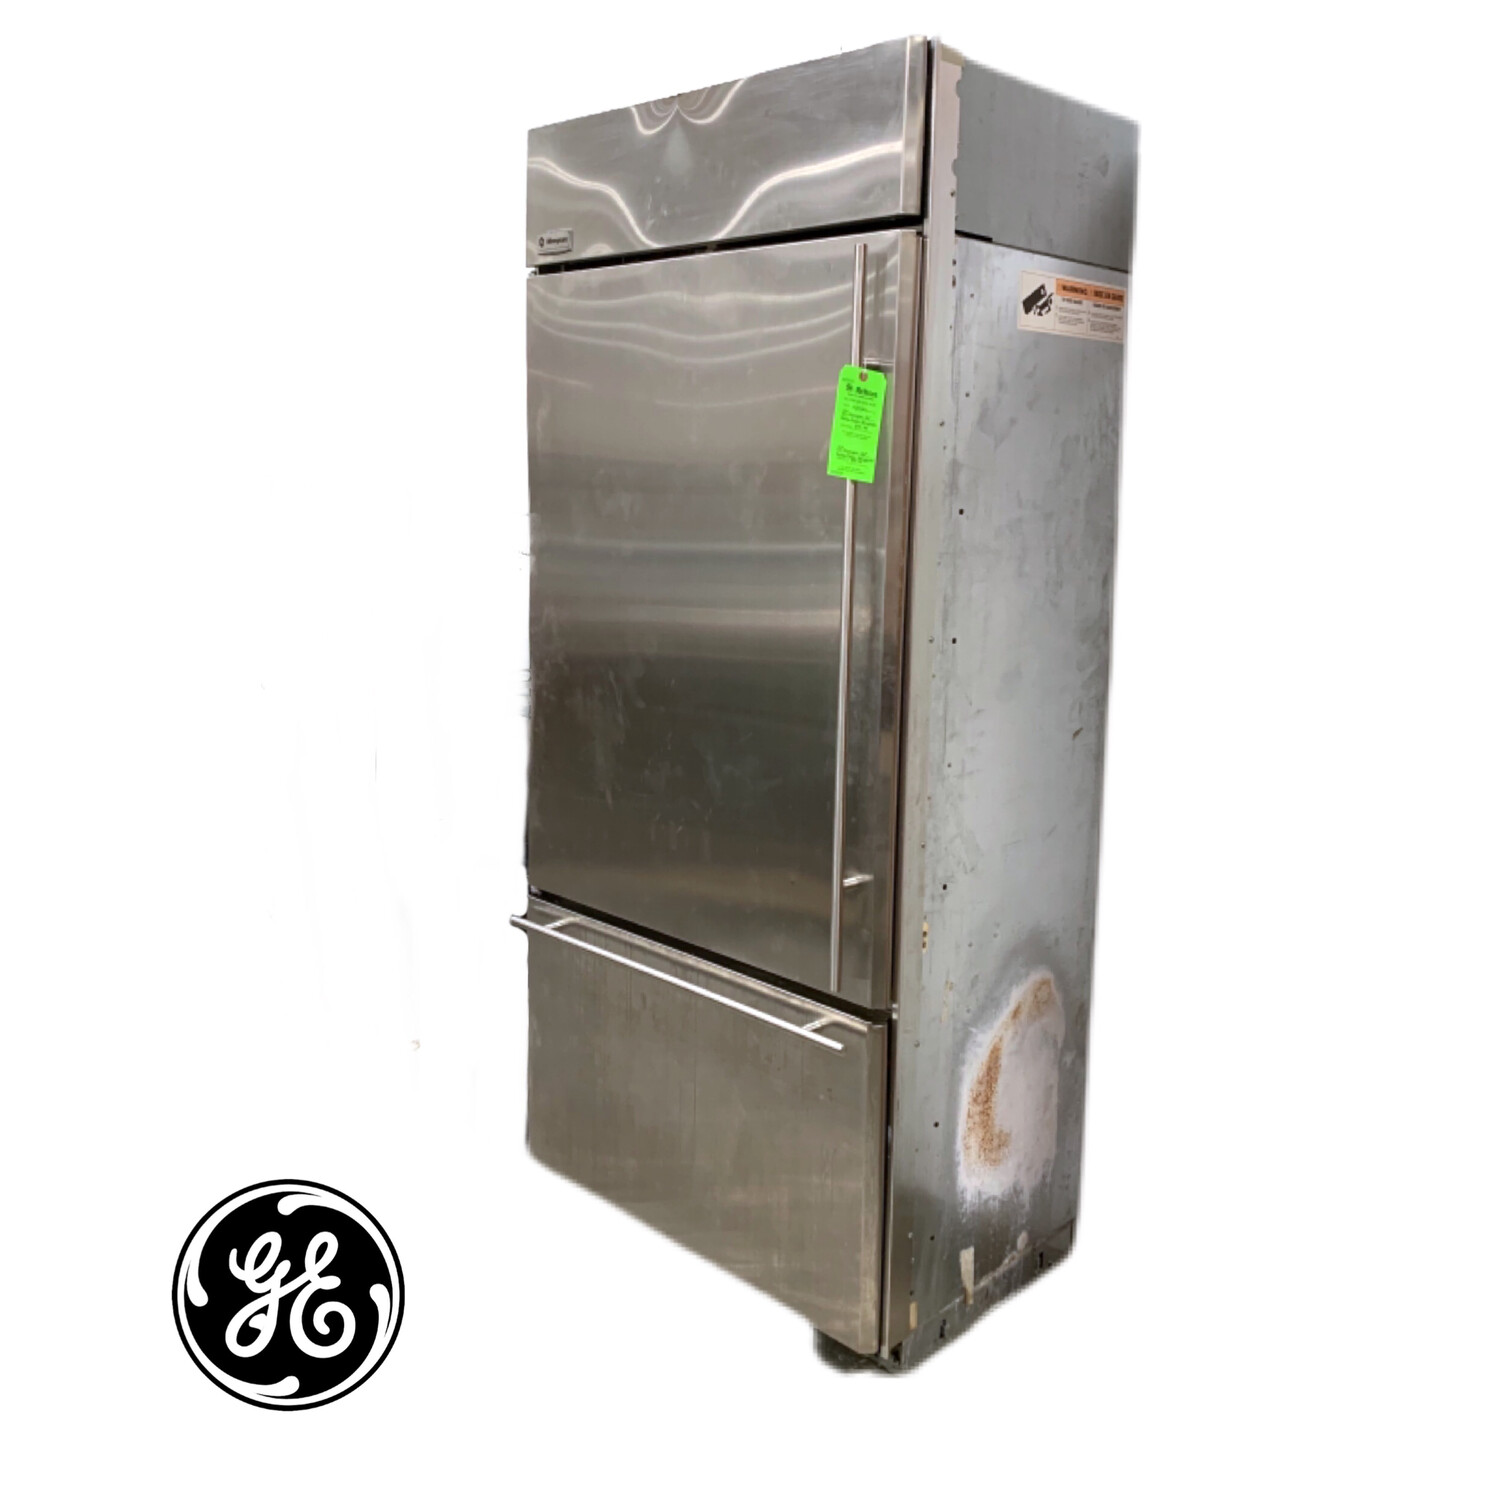 "GE Monogram 36"" Bottom Freezer Refrigerator"